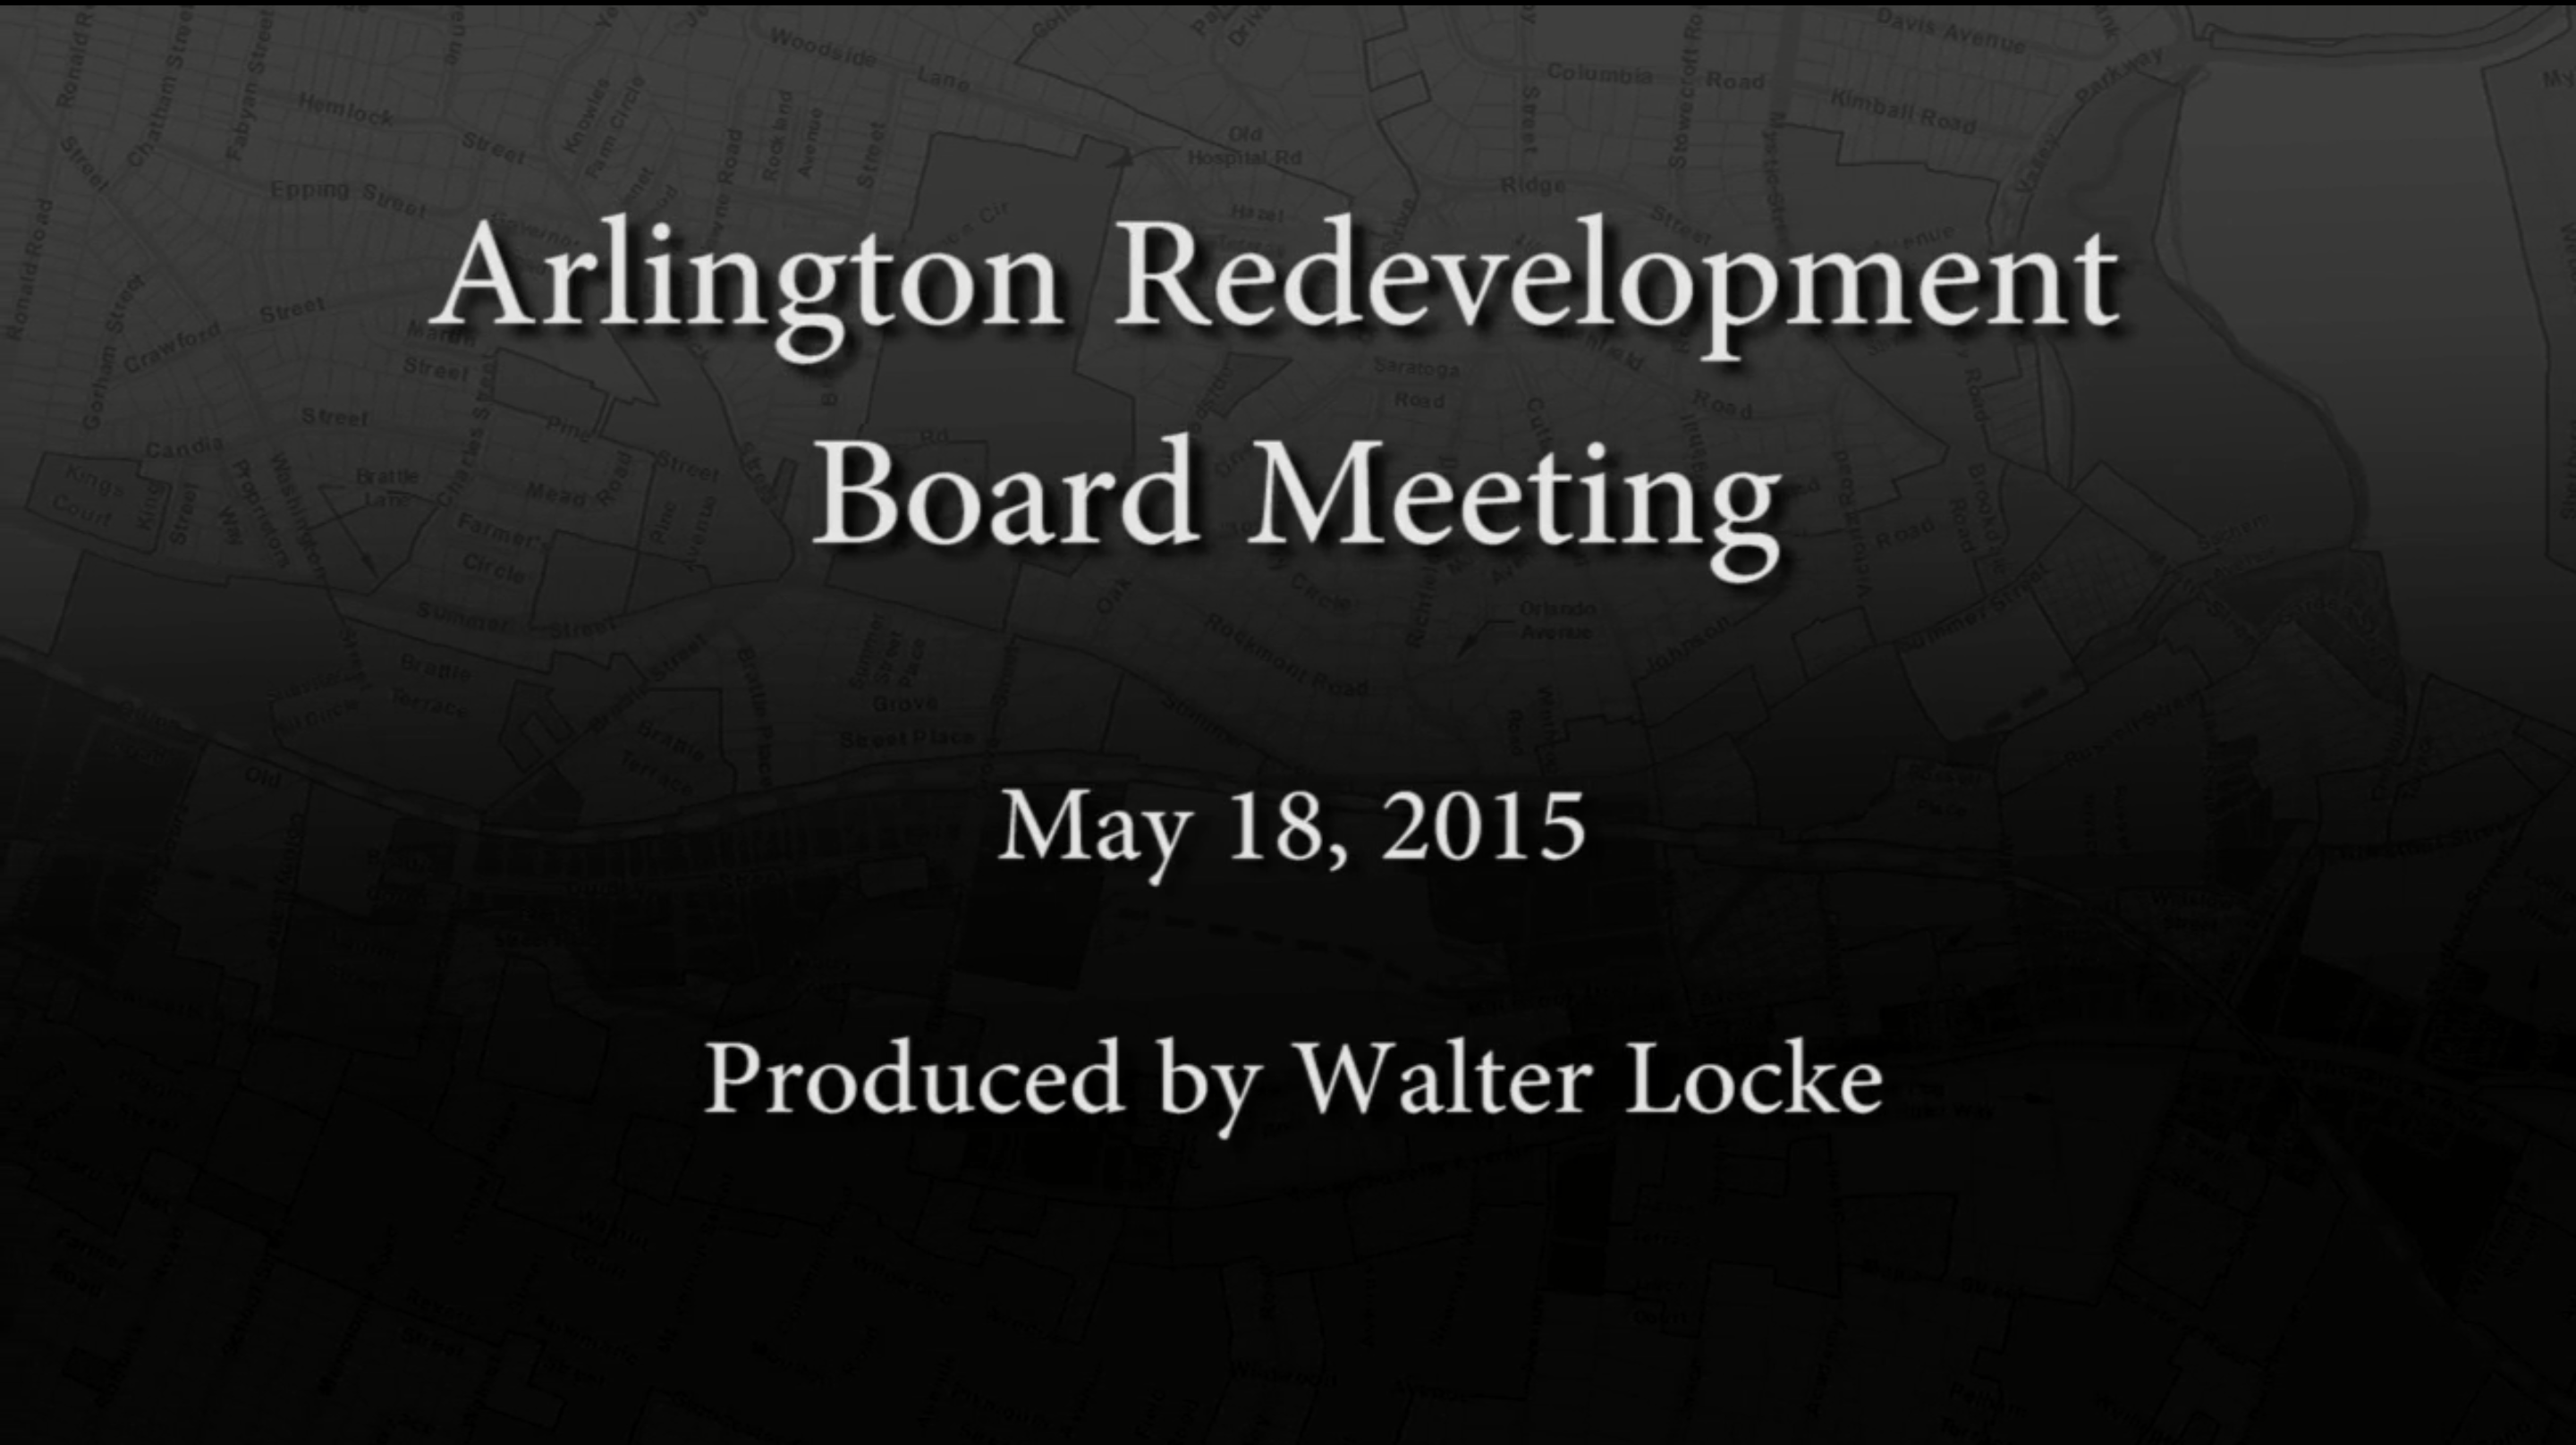 Redevelopment Board Meeting – May 18, 2015